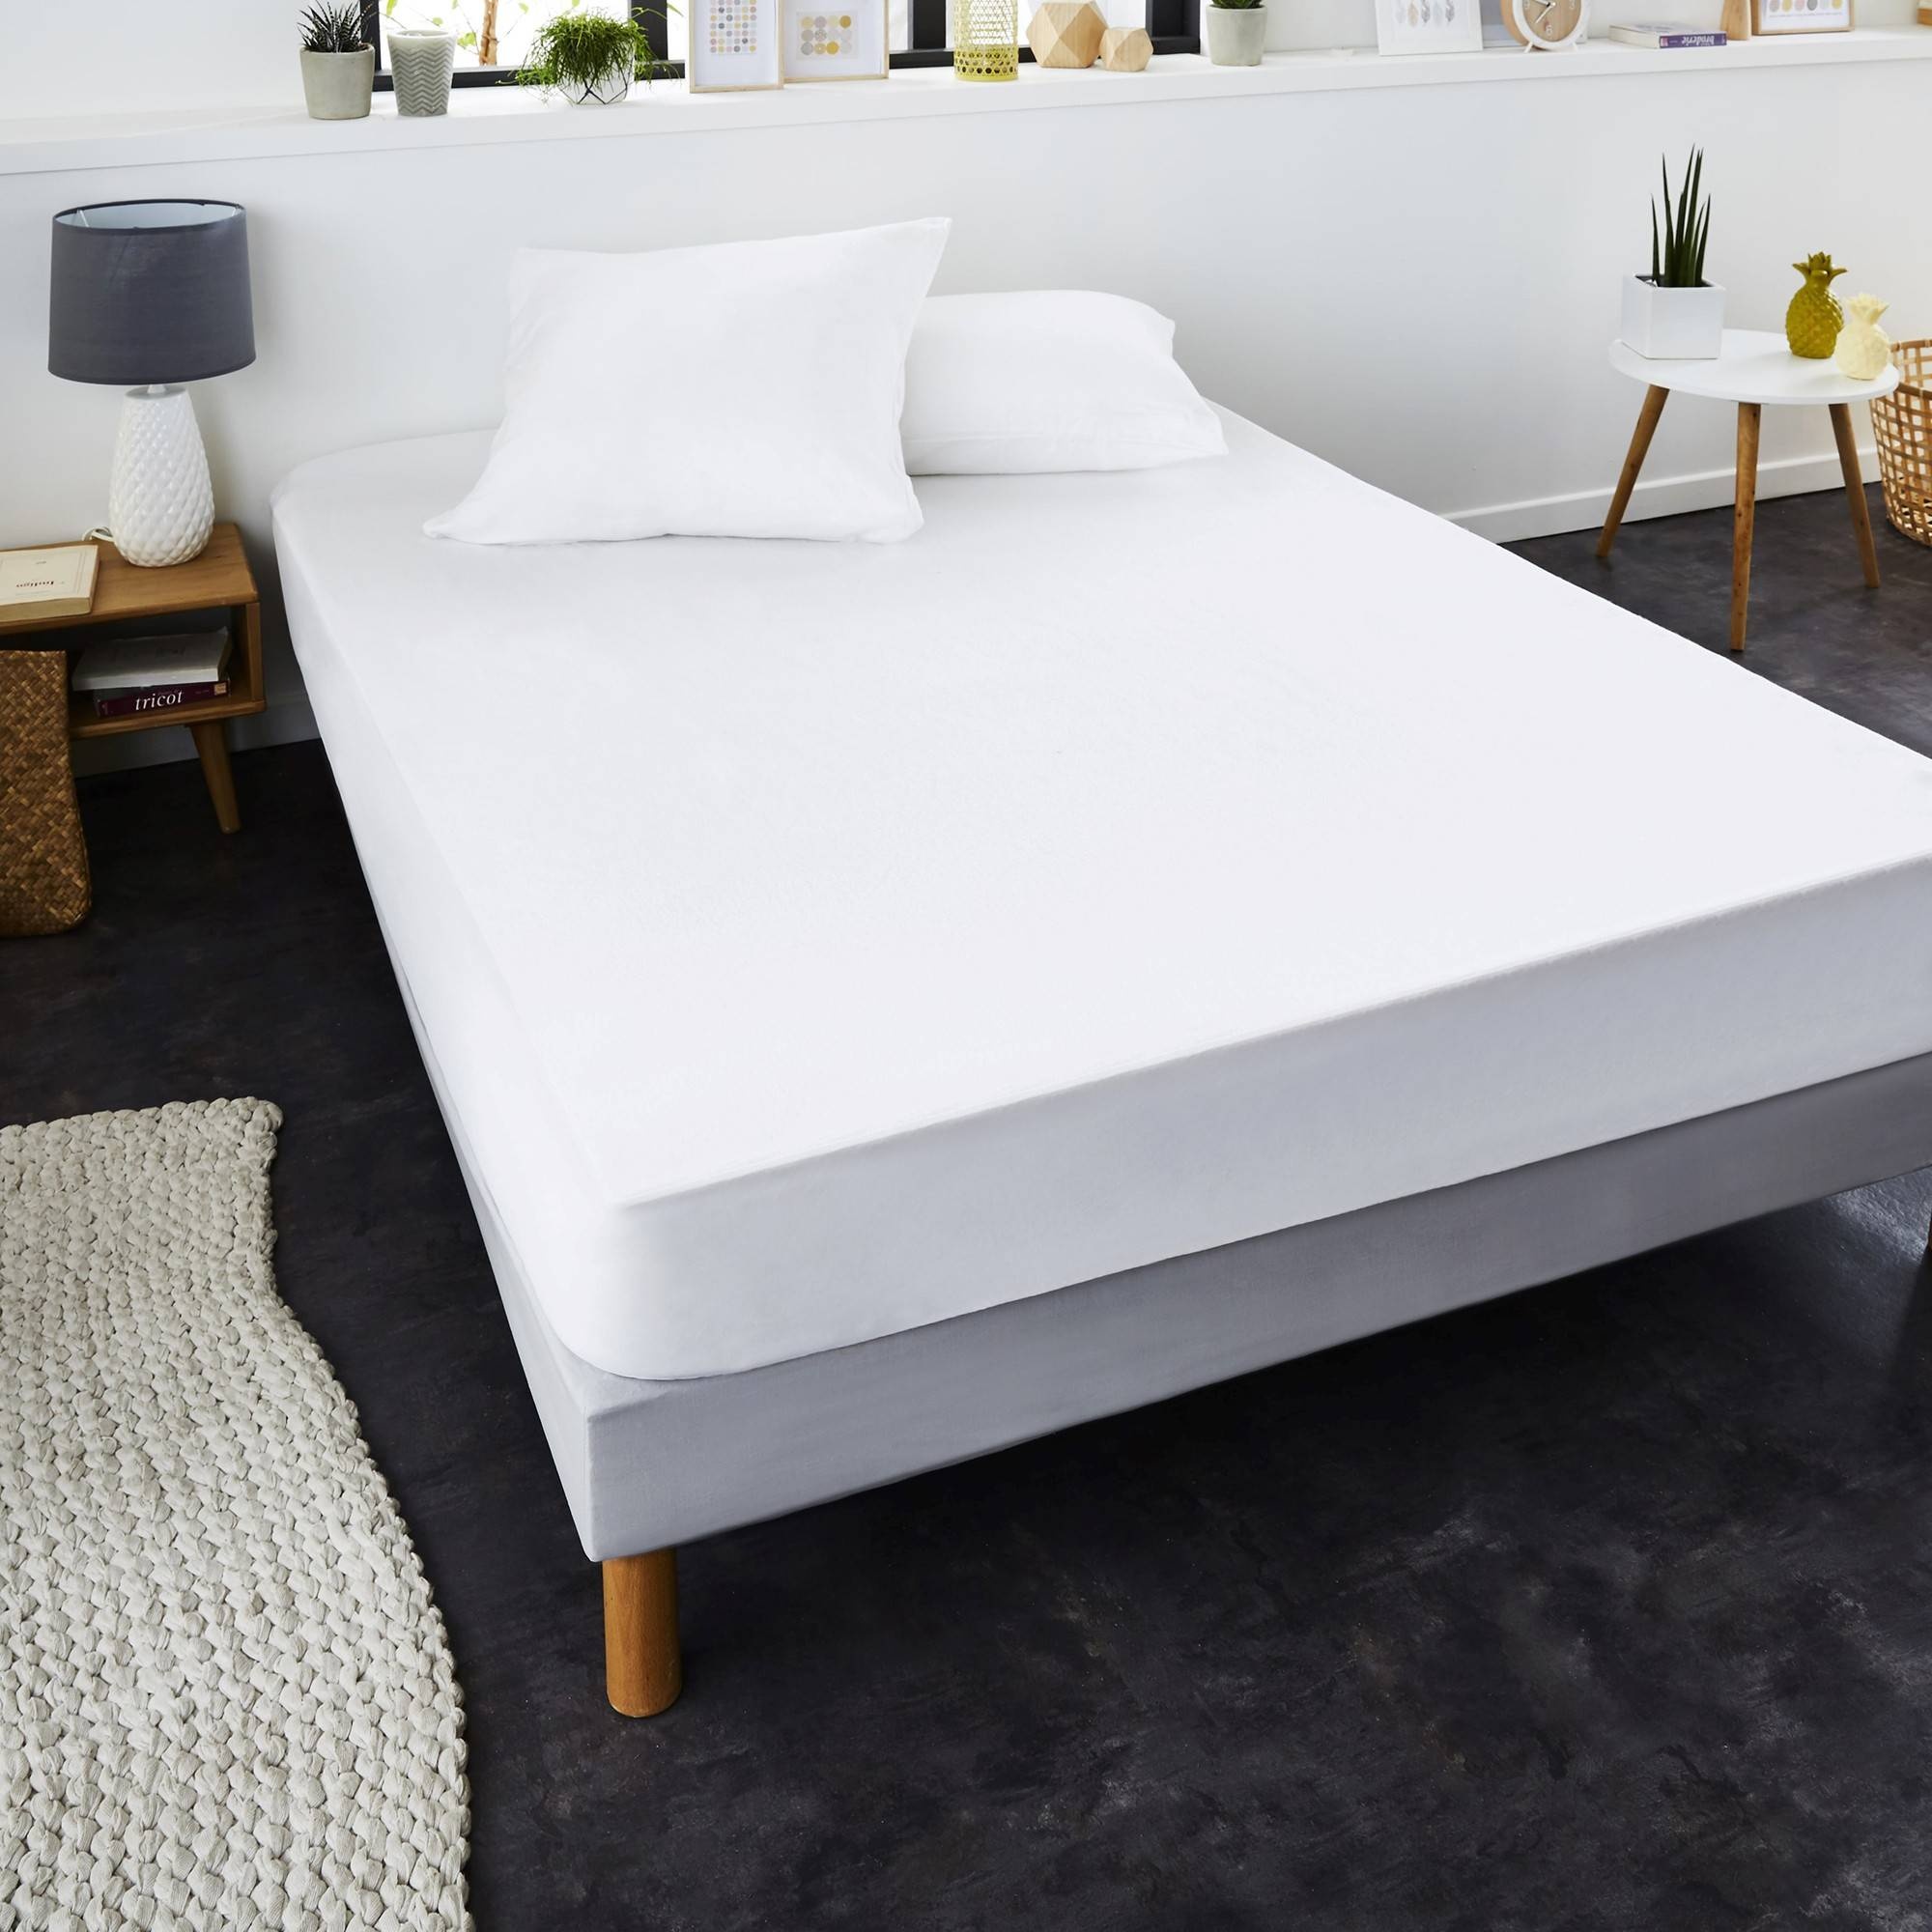 Protège-matelas anti-acariens Greenfirst® molleton absorbant - Blanc - Blancheporte